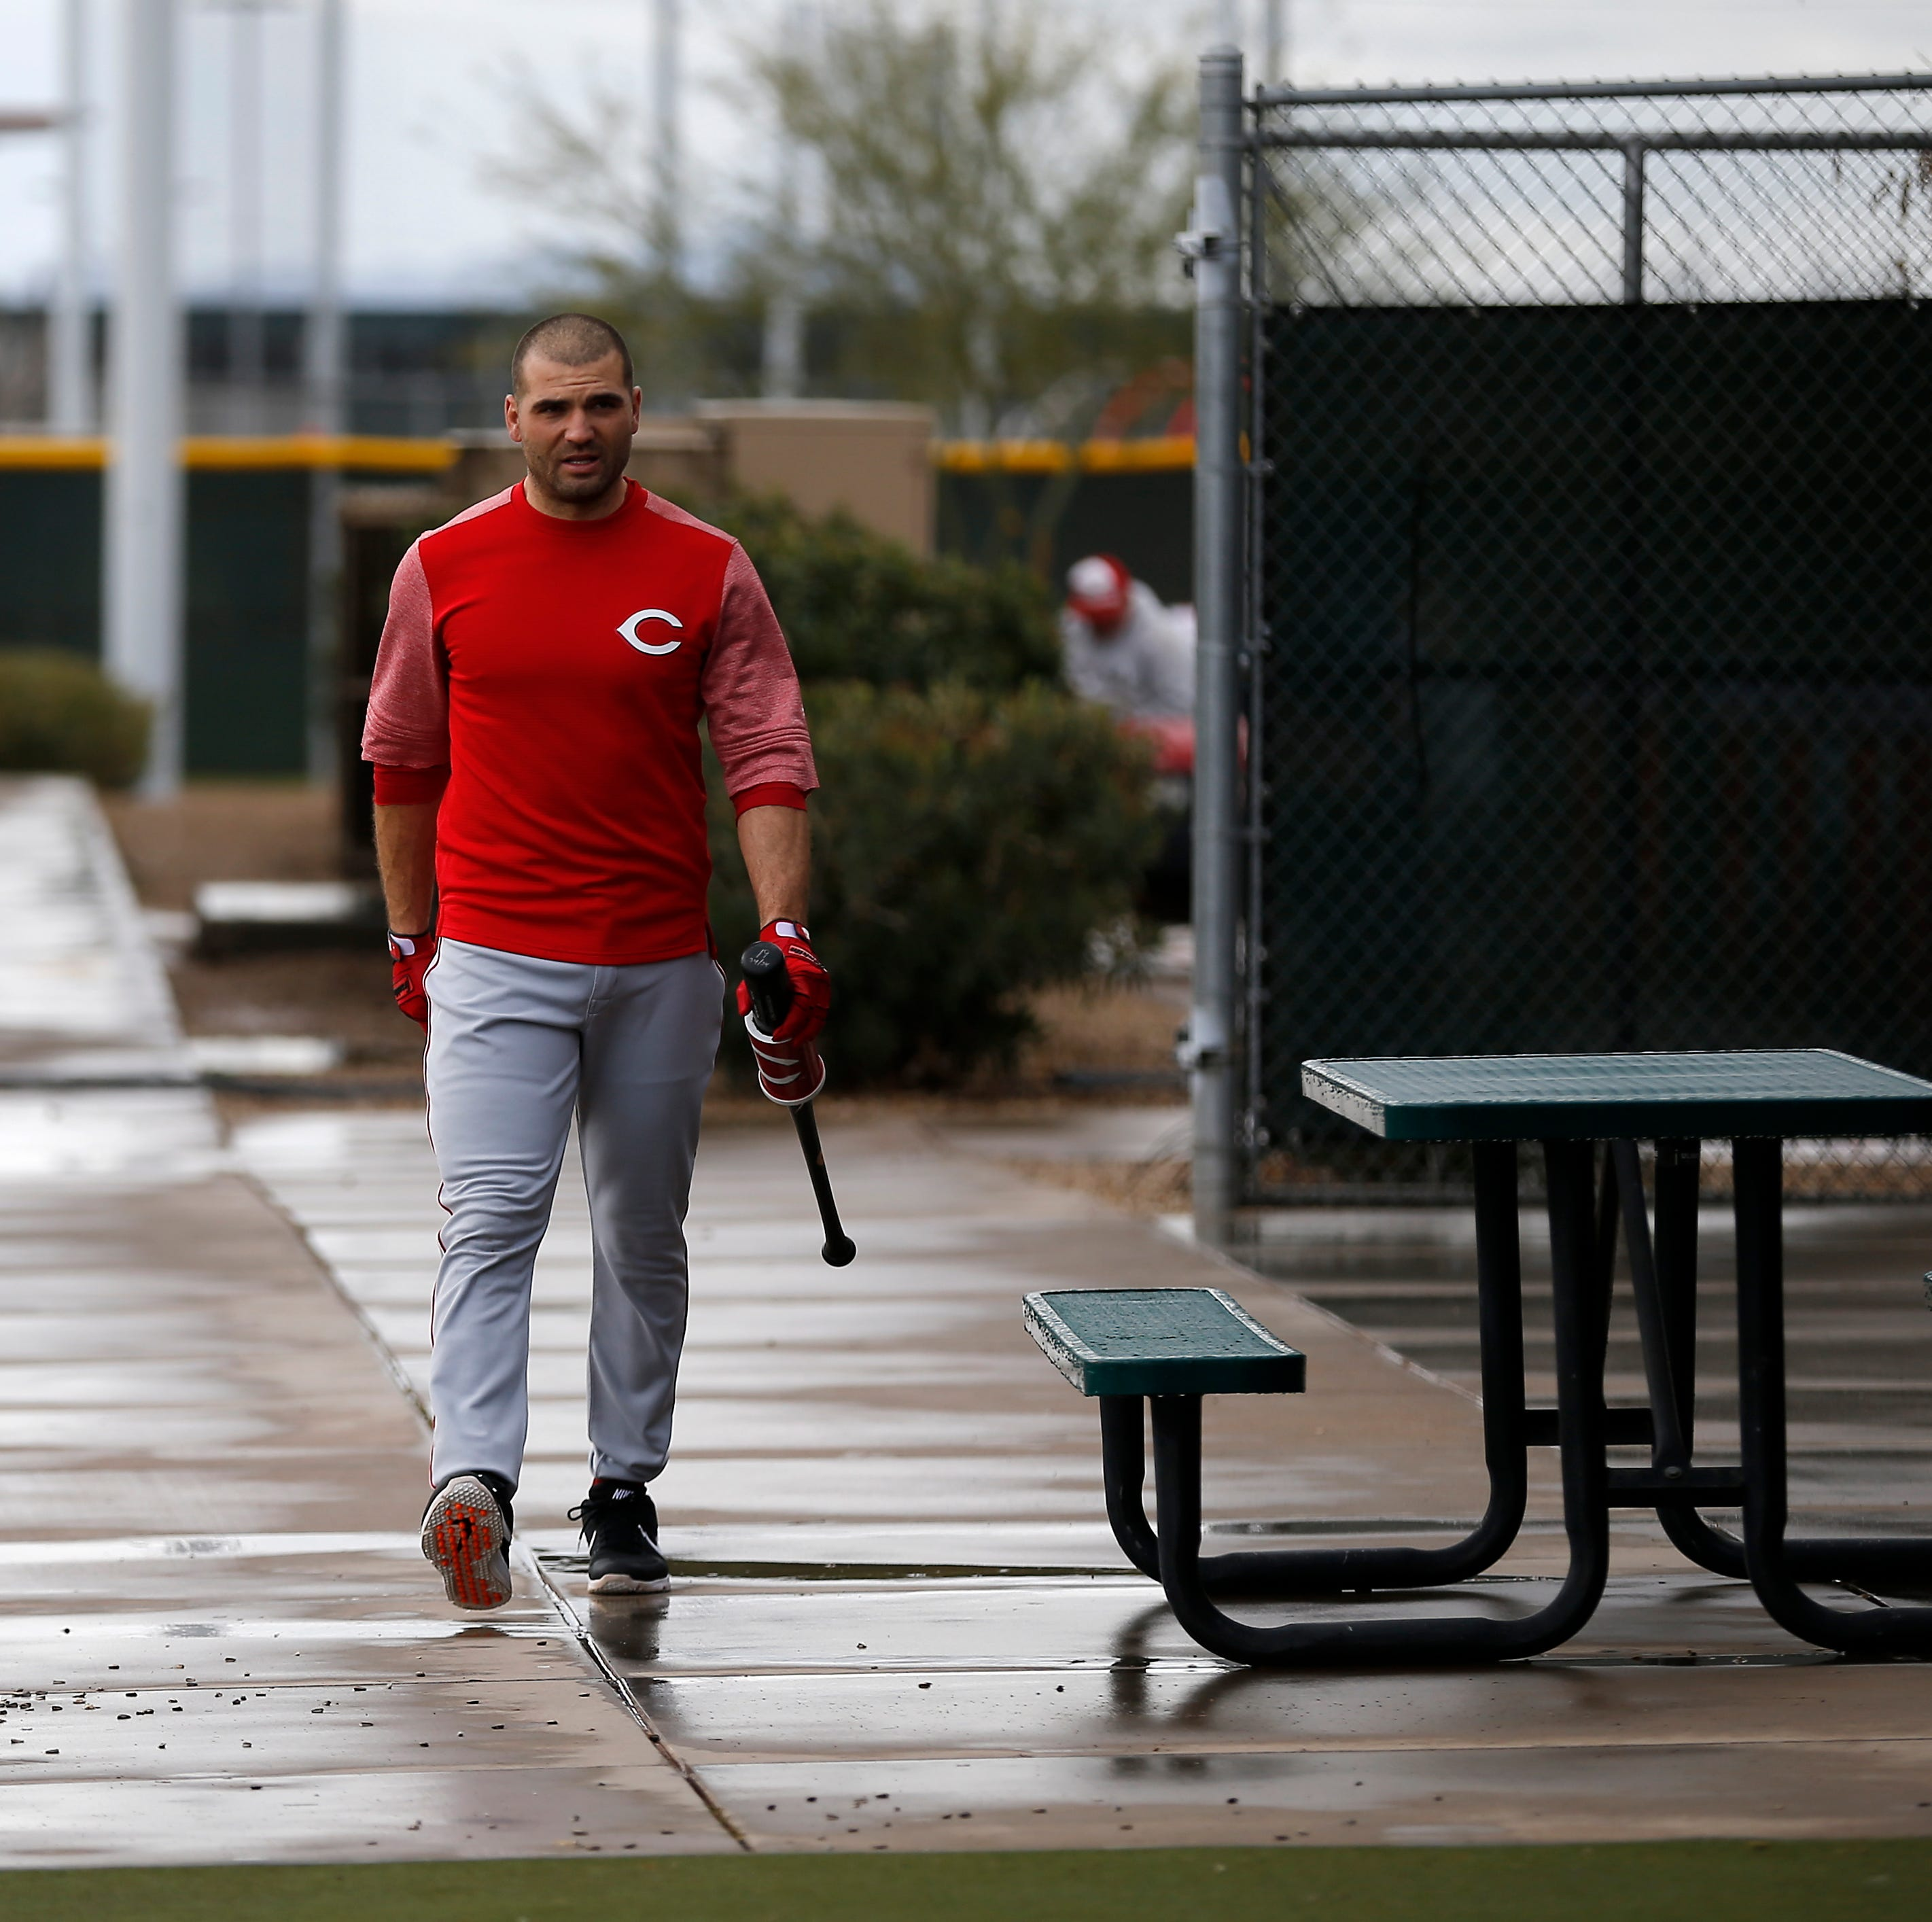 Spring Training report: Takeaways from the Cincinnati Reds' rainy workout